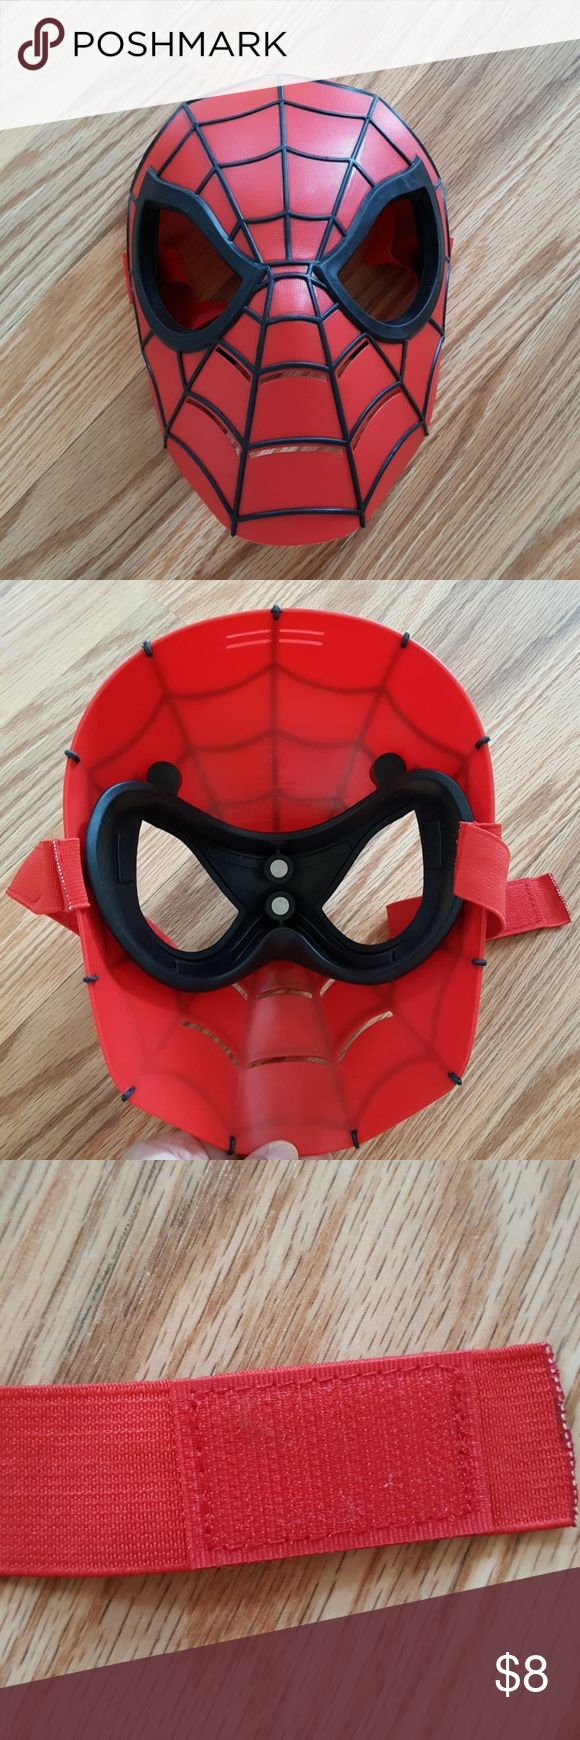 """Spiderman Mask Very good condition Spiderman mask. About 8.5"""" long.   Made of plastic that also has some flexibility to it. Perfect for Halloween and play! Costumes"""